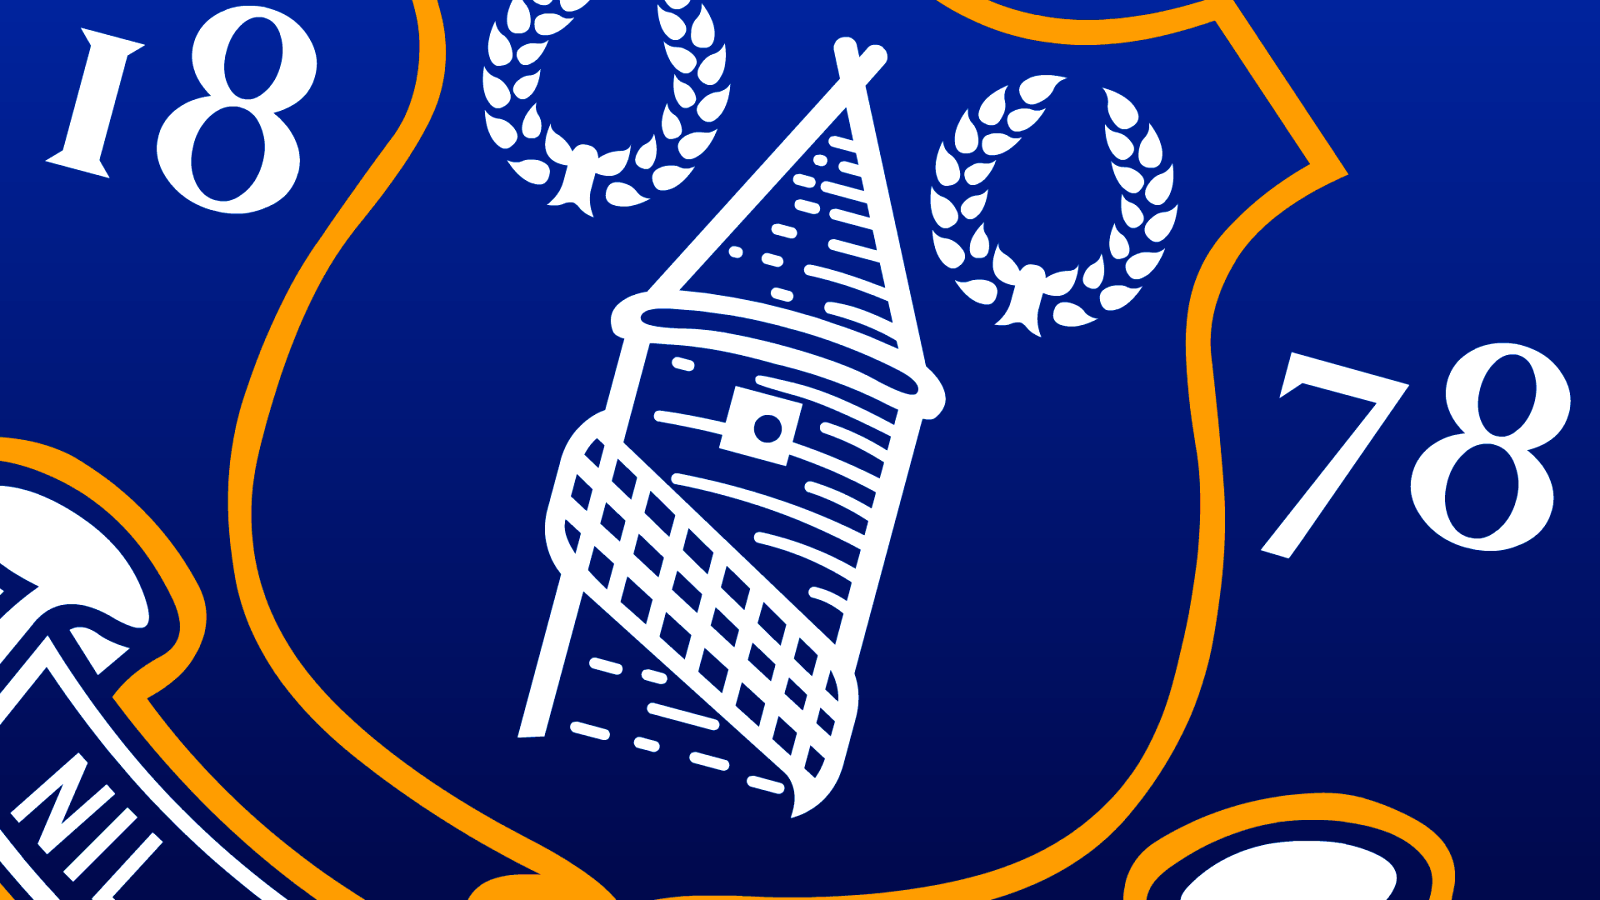 Everton F C Wallpapers Wallpaper Cave